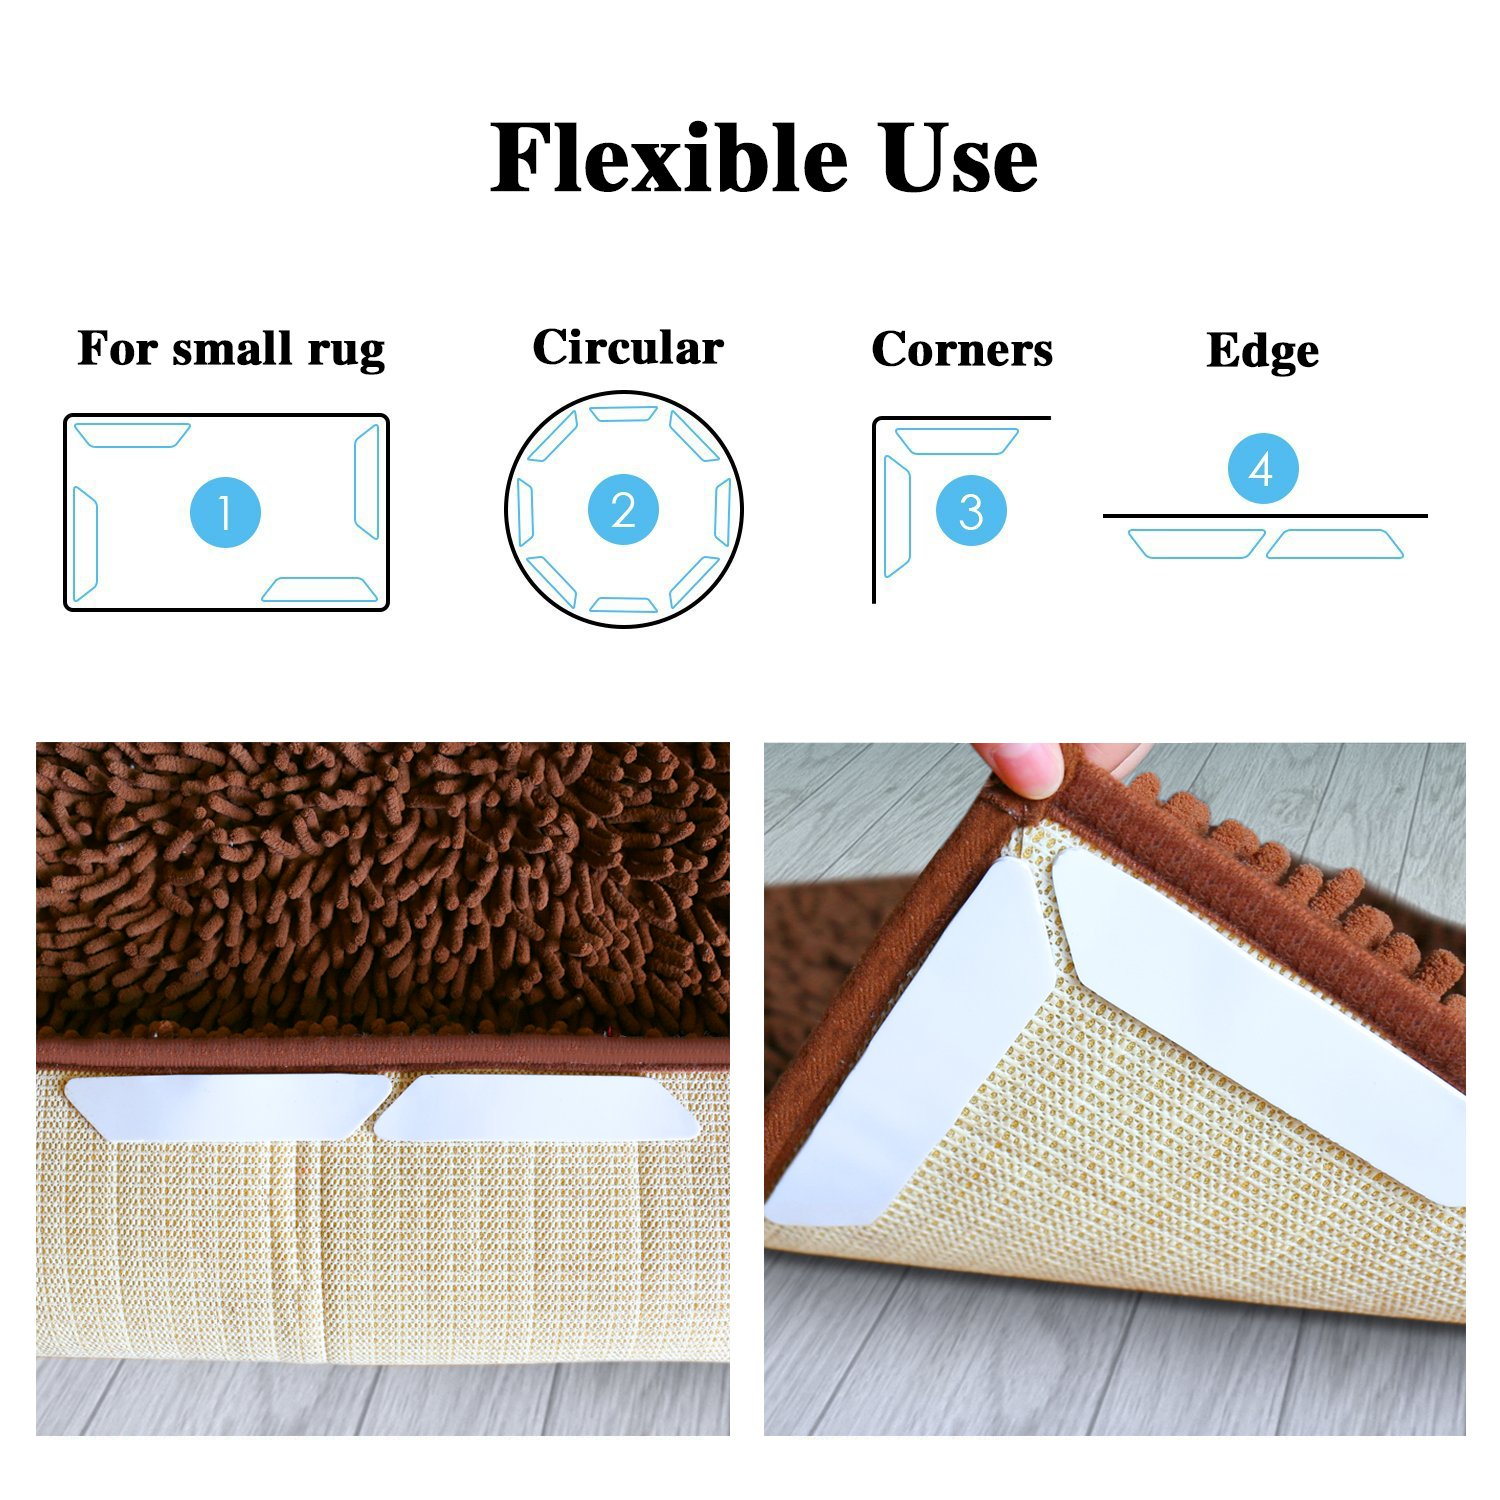 16 PCS Rug Gripper, Double Side Anti Curling & Non Slip Rug Gripper Keep Carpet Tape Stop Slipping for Outdoor / Bath / Kitchen / Round / Corner / Hardwood Floor Carpet Pads - White by drtulz (Image #3)